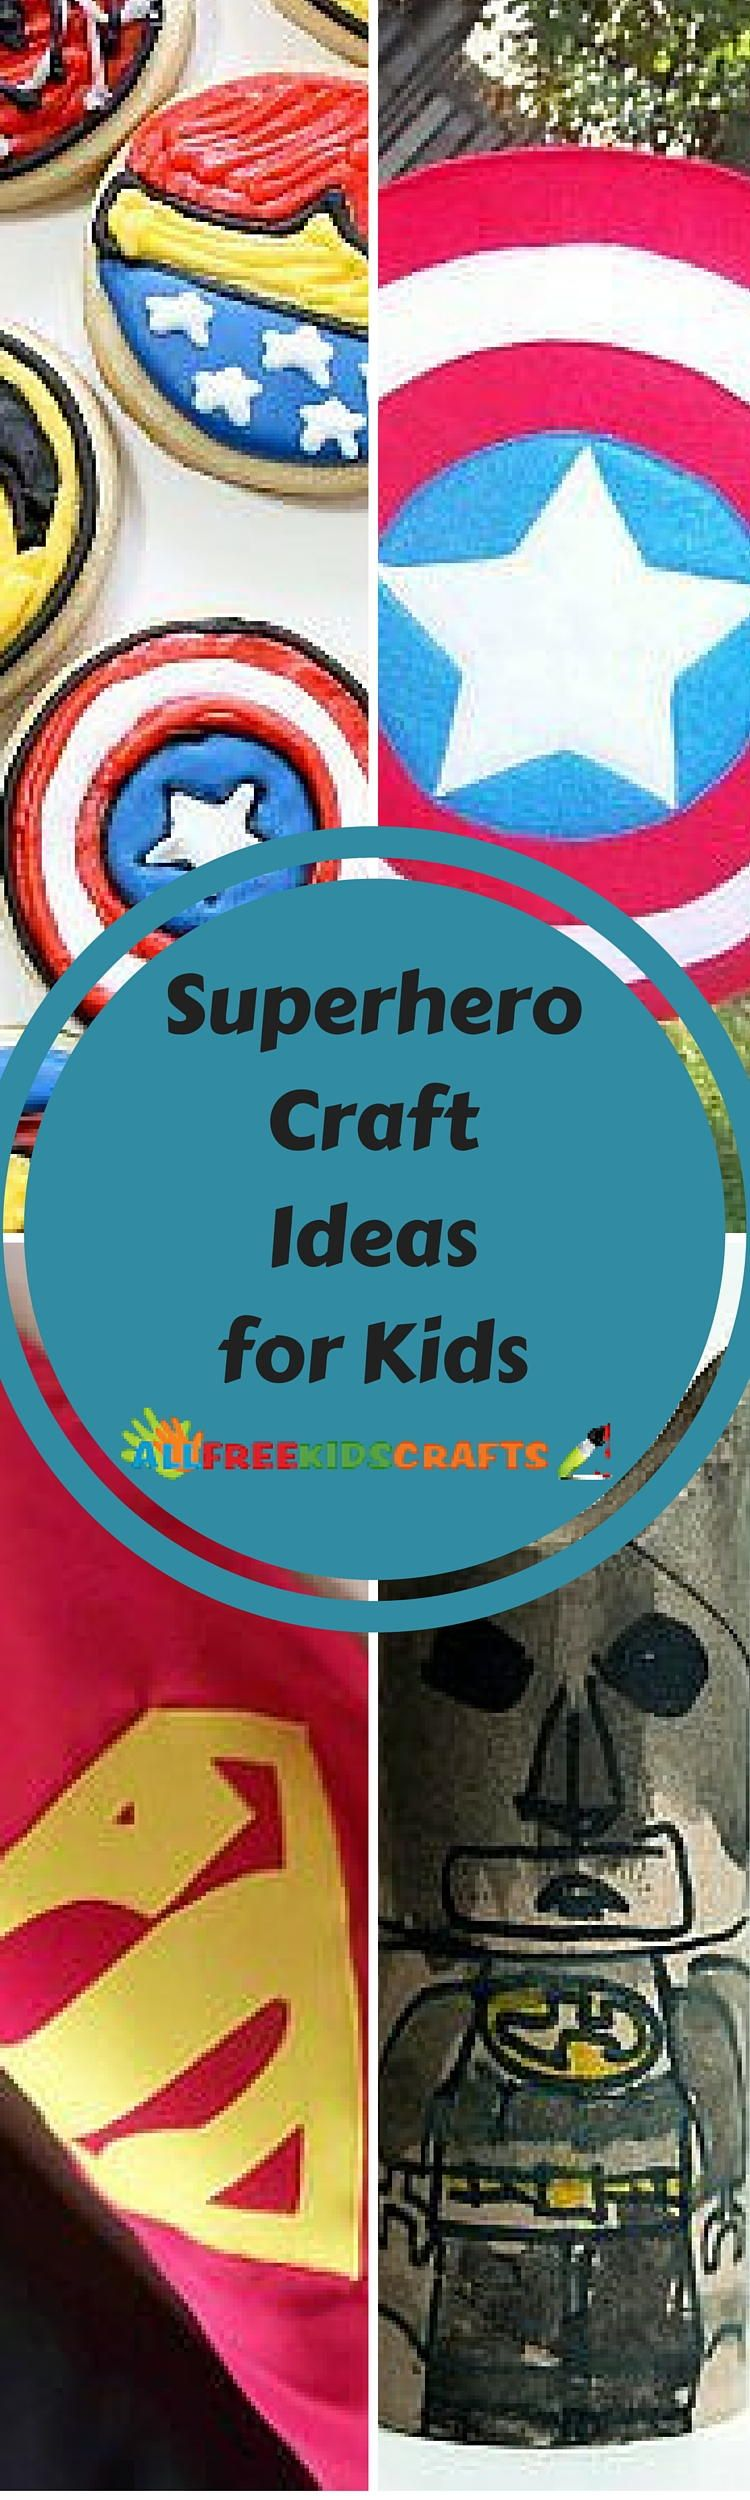 30+ Superhero Craft Ideas for Kids #superherocrafts